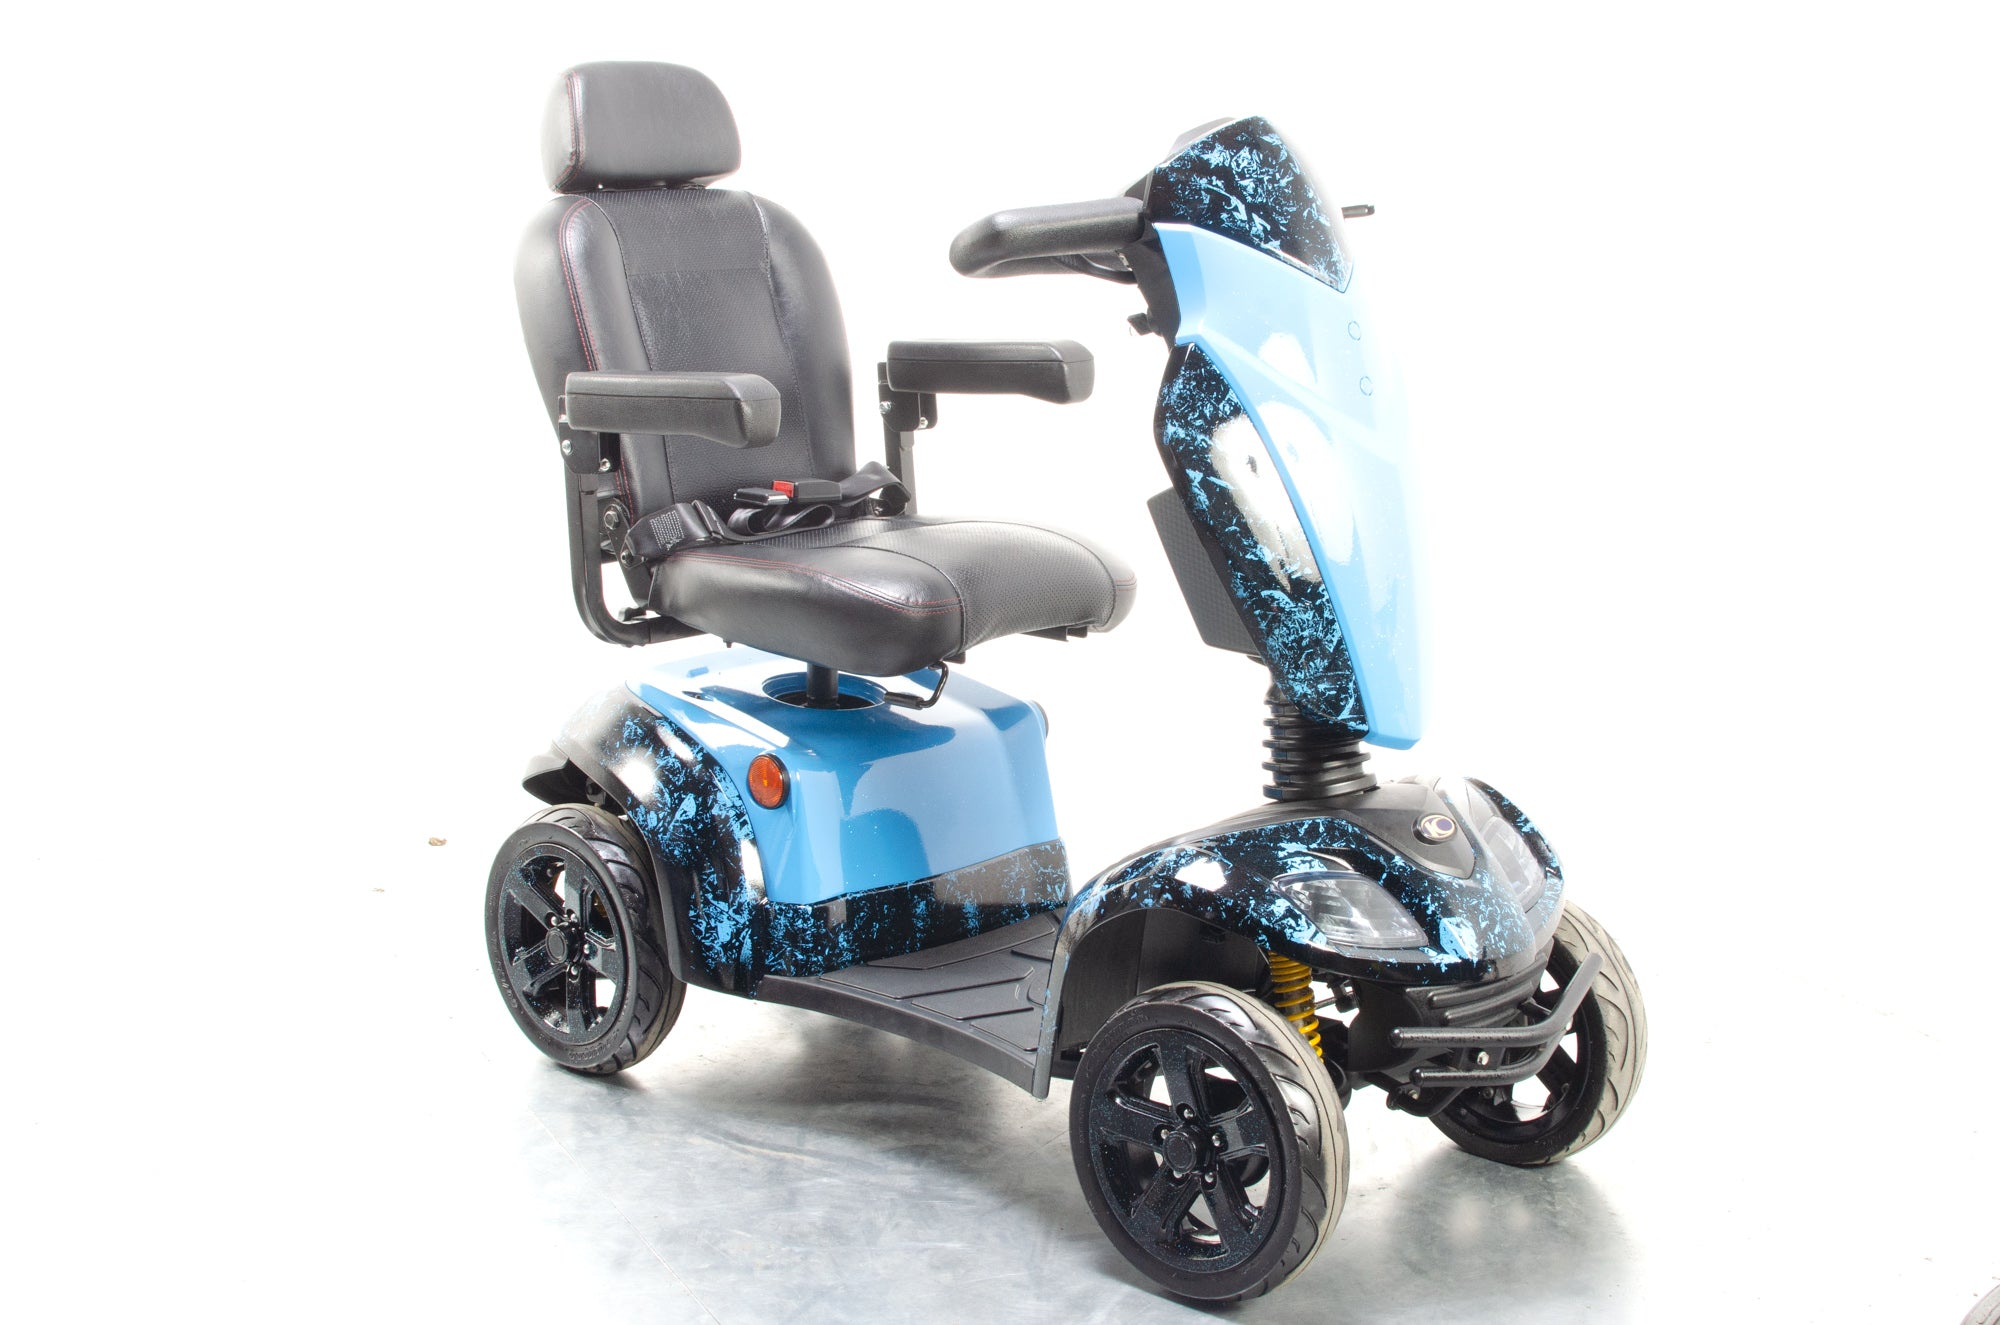 Kymco Agility 8mph Electric Mobility Scooter Road Large All-Terrain